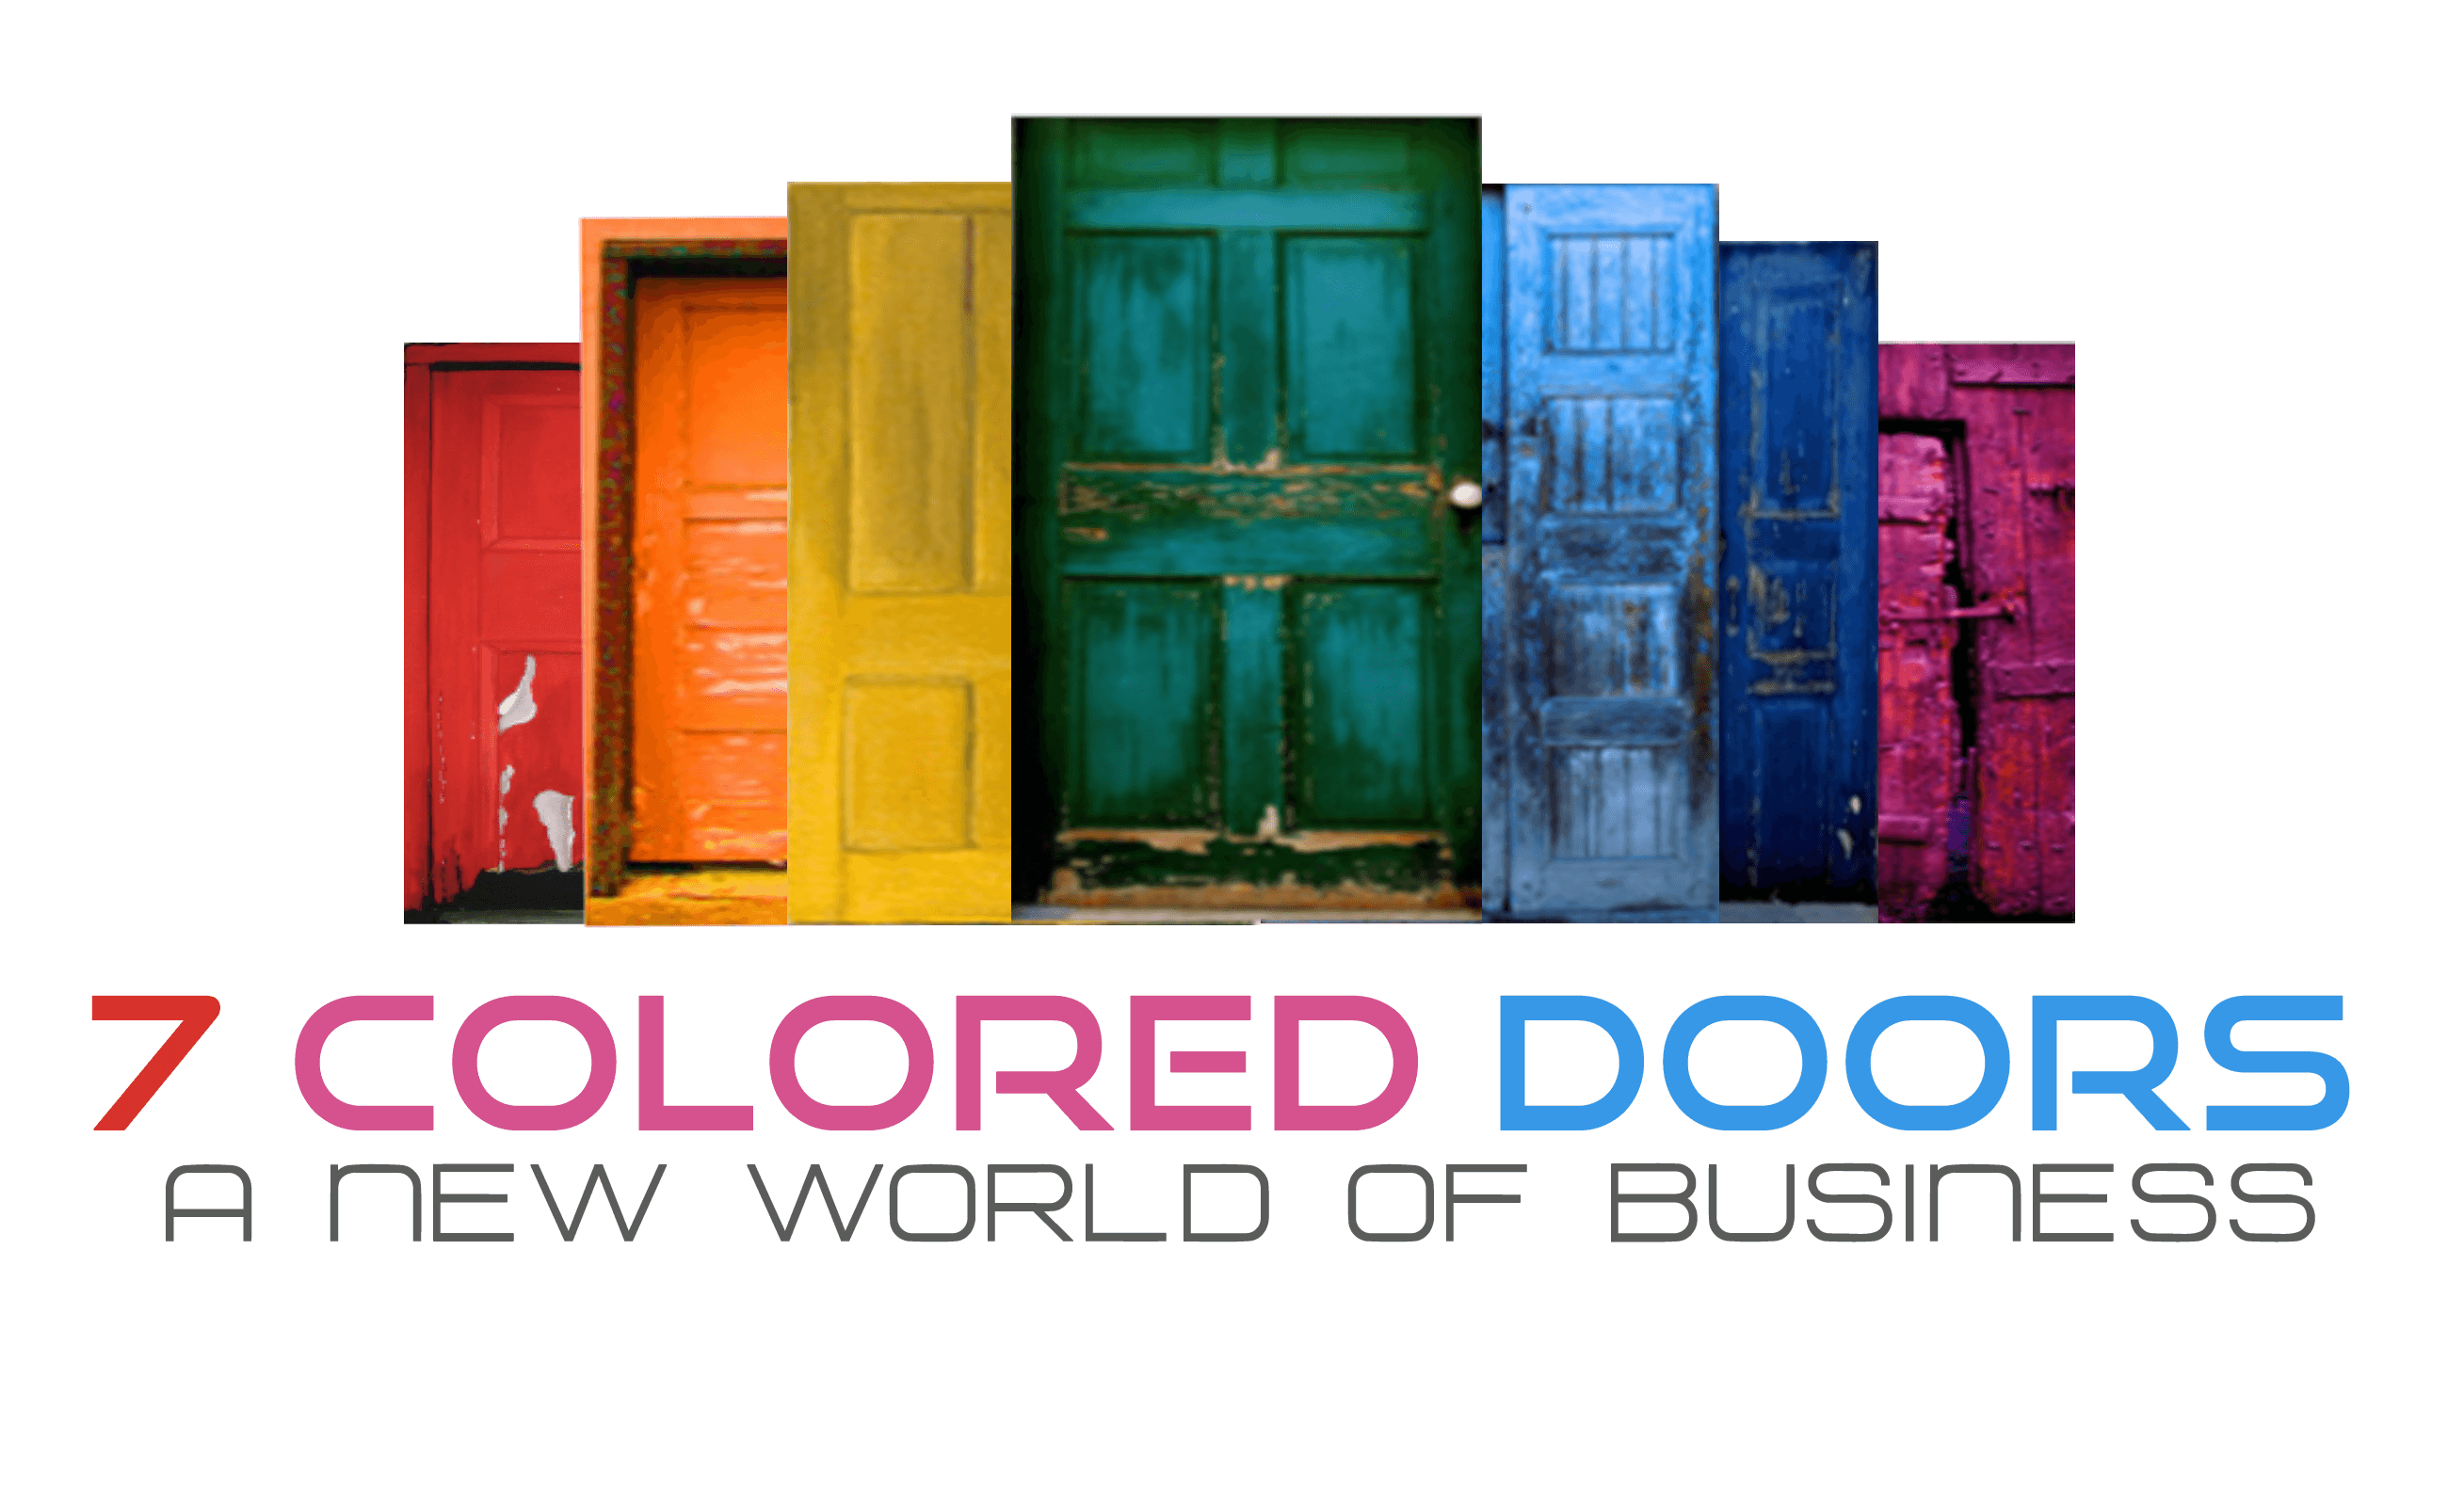 7 colored doors a new world of business